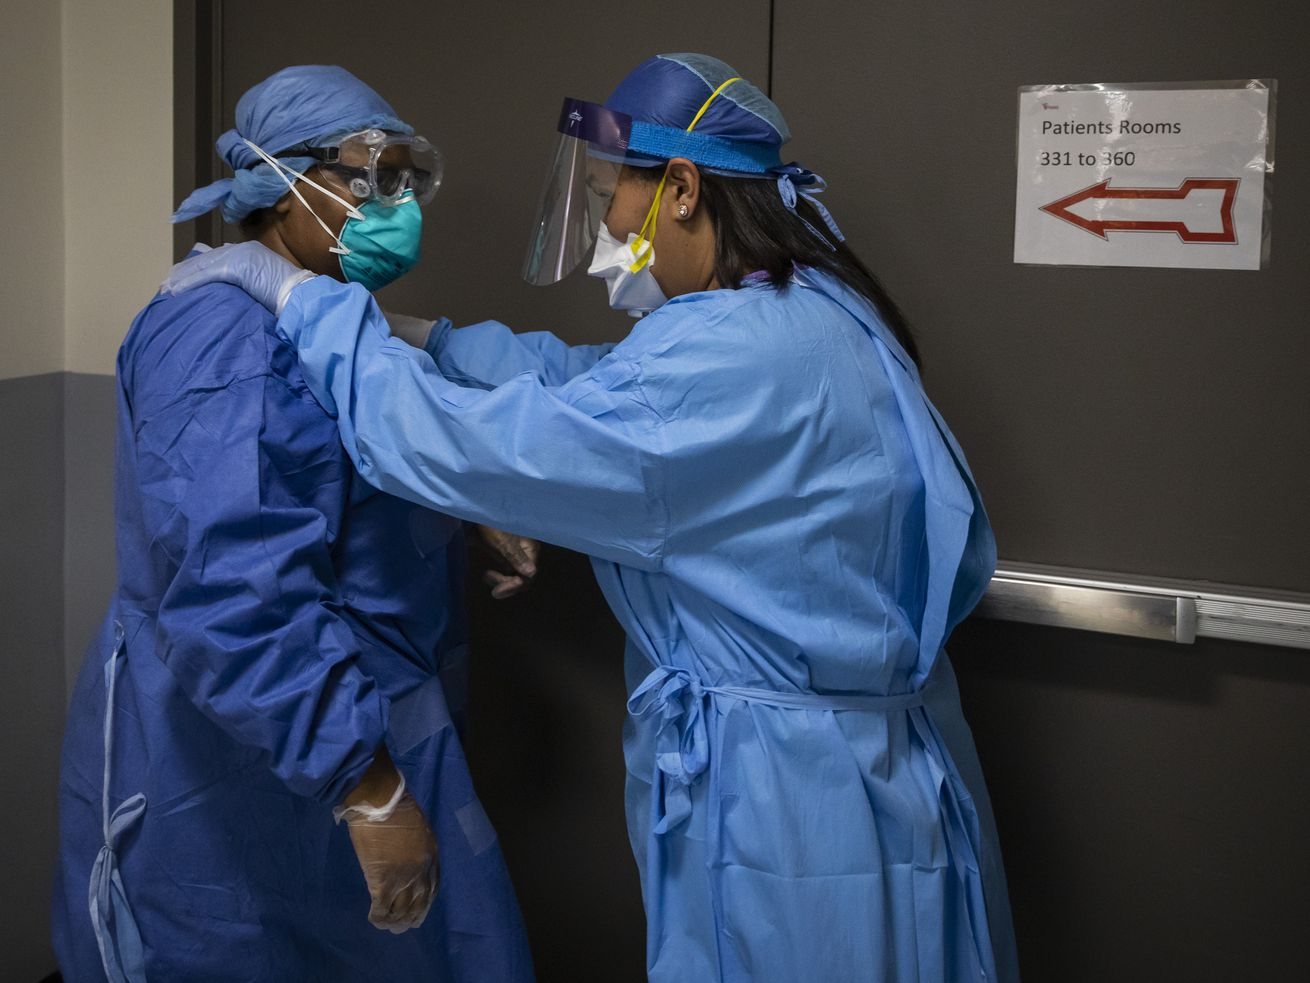 Nurse practitioner Capri Reese, right, gives a pep-talk to nurse Tamara Jones in the COVID-19 unit earlier this year at Roseland Community Hospital. Illinois is in the midst of its deadliest stretch of the pandemic.